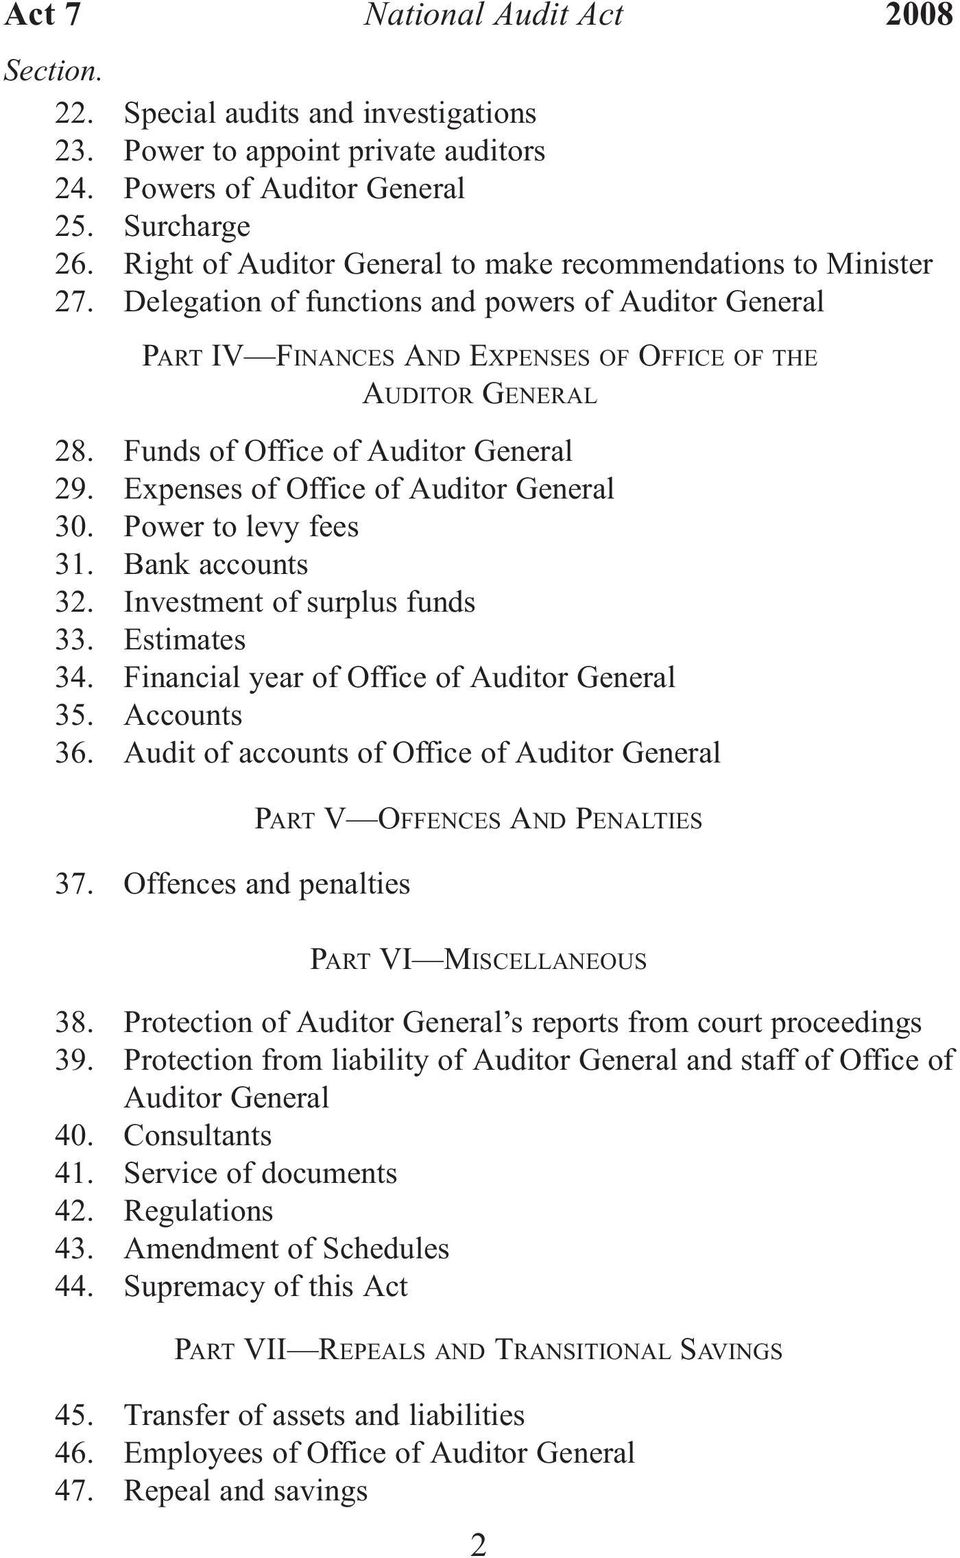 Expenses of Office of Auditor General 30. Power to levy fees 31. Bank accounts 32. Investment of surplus funds 33. Estimates 34. Financial year of Office of Auditor General 35. Accounts 36.